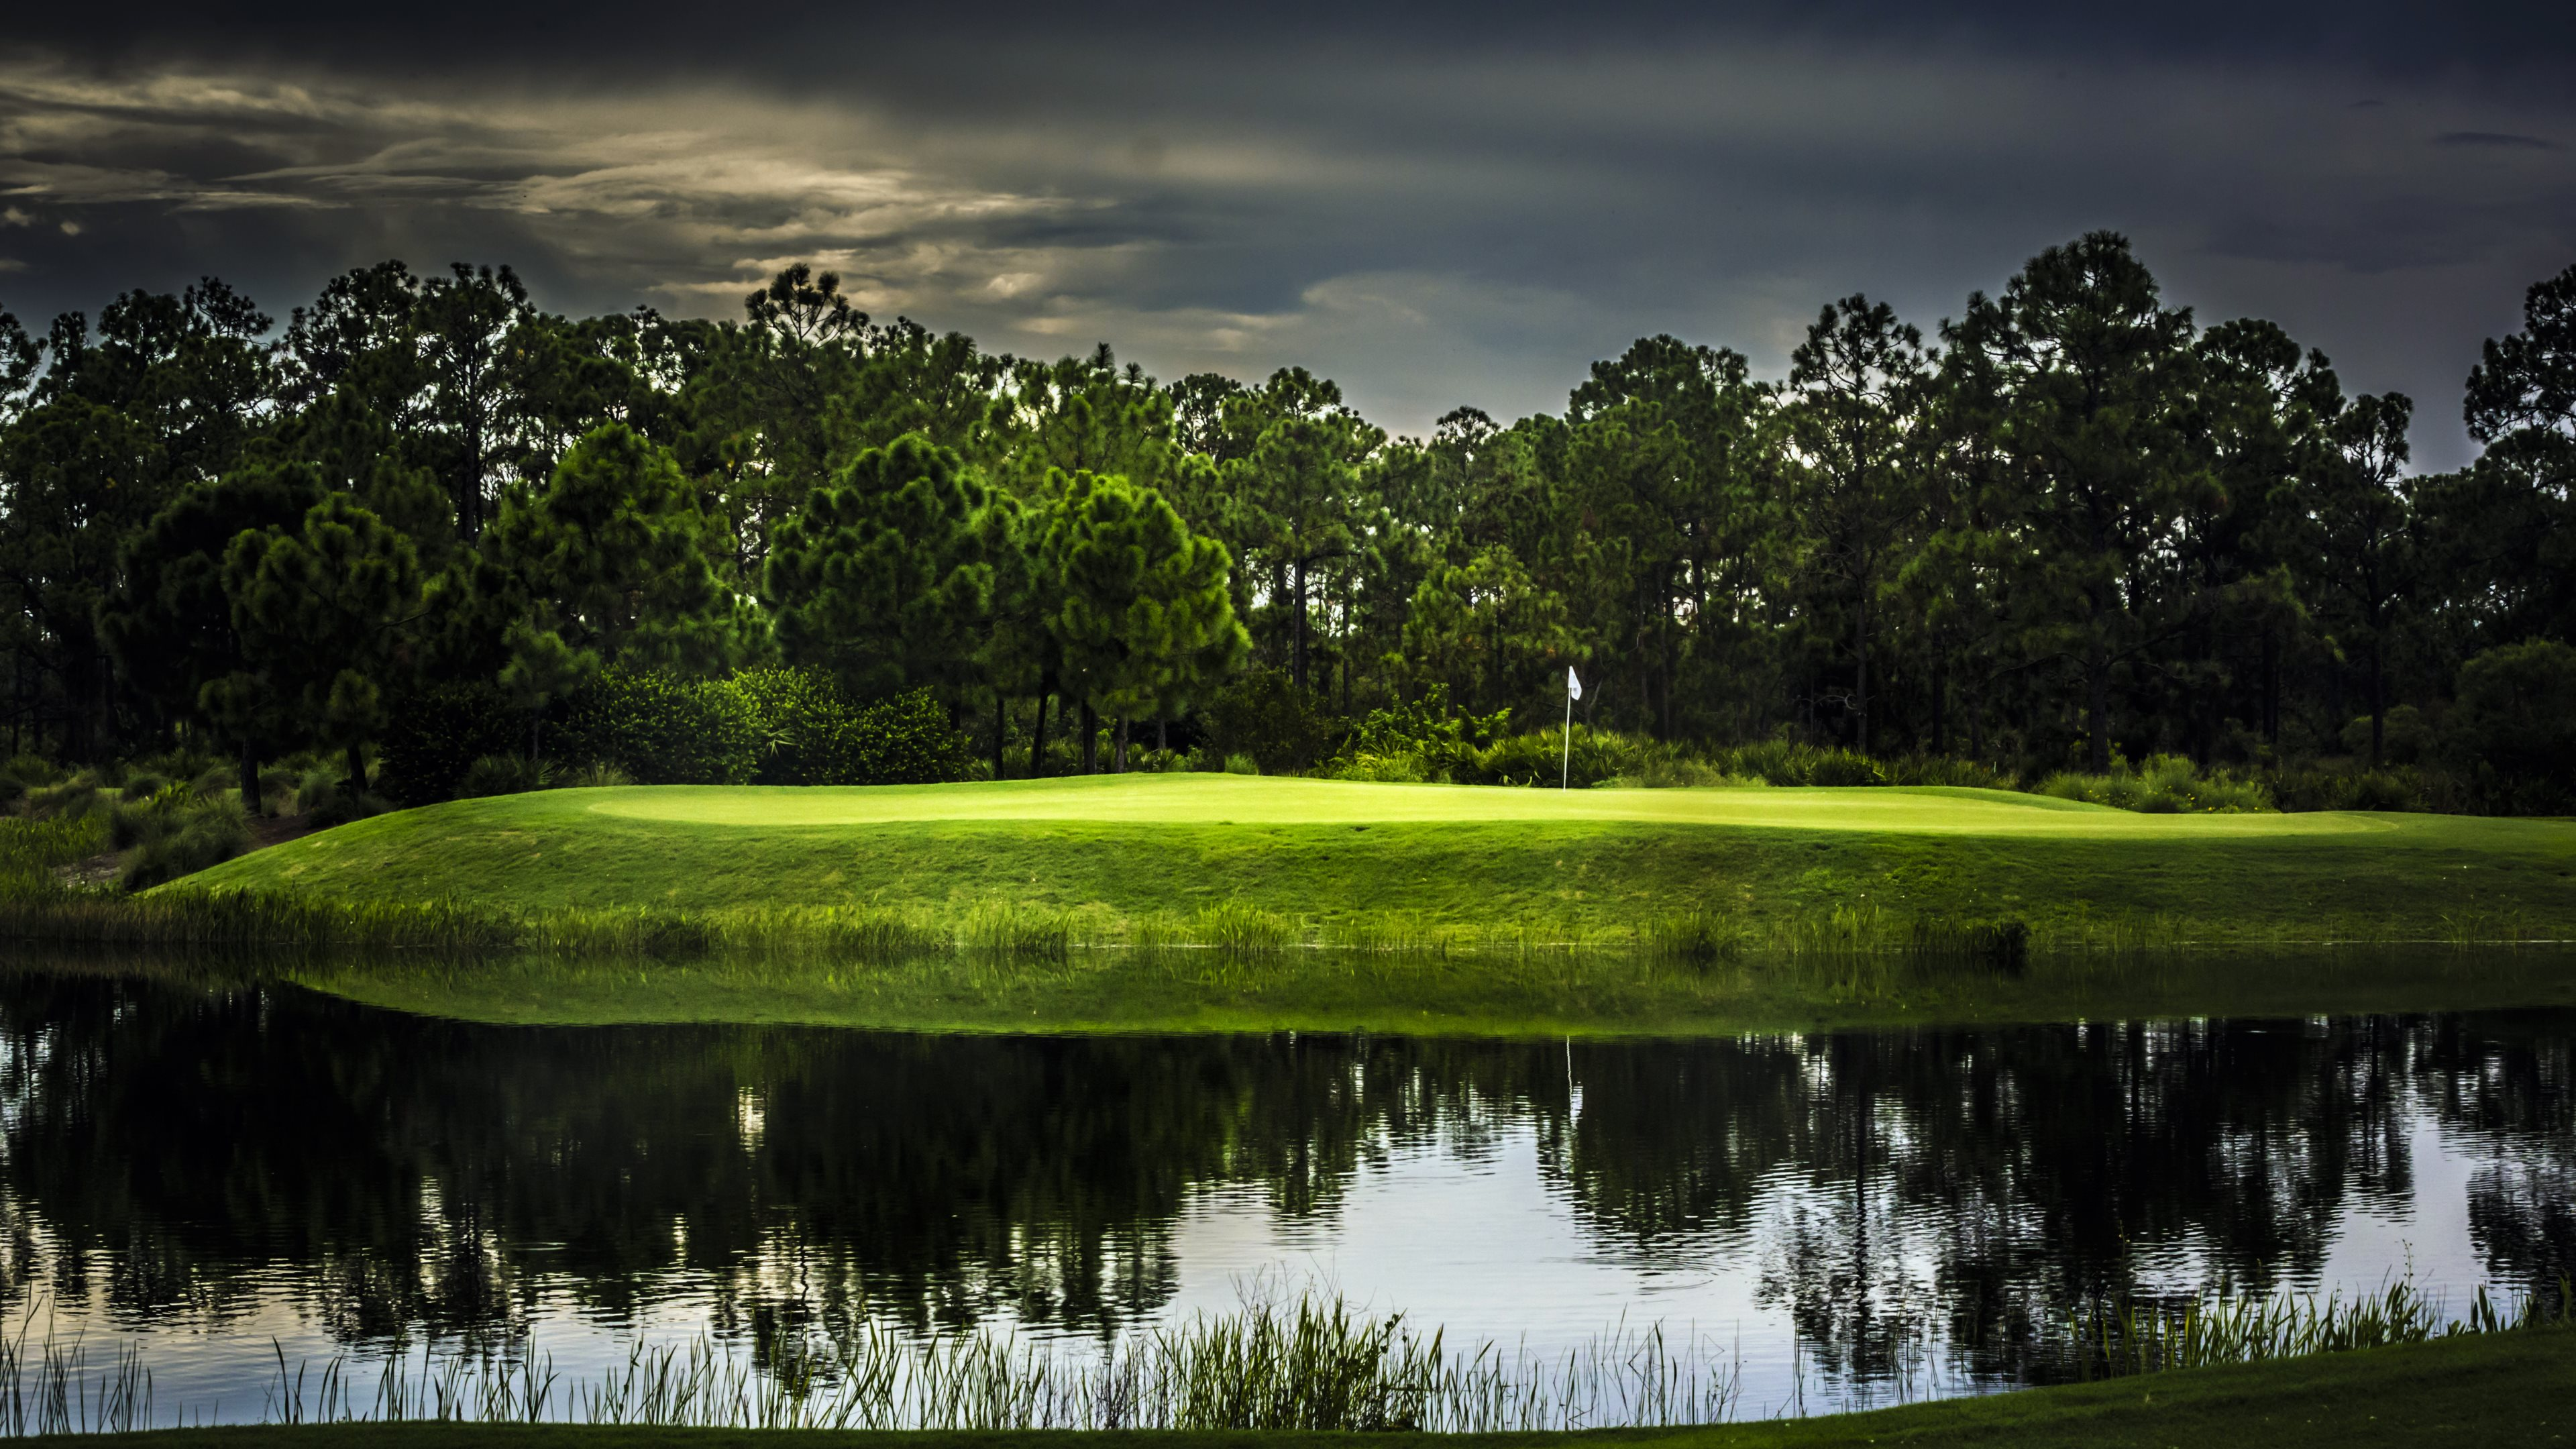 Golf Pictures Golf Club And Ball Hd Desktop Wallpapers Blog 893 3840x2160